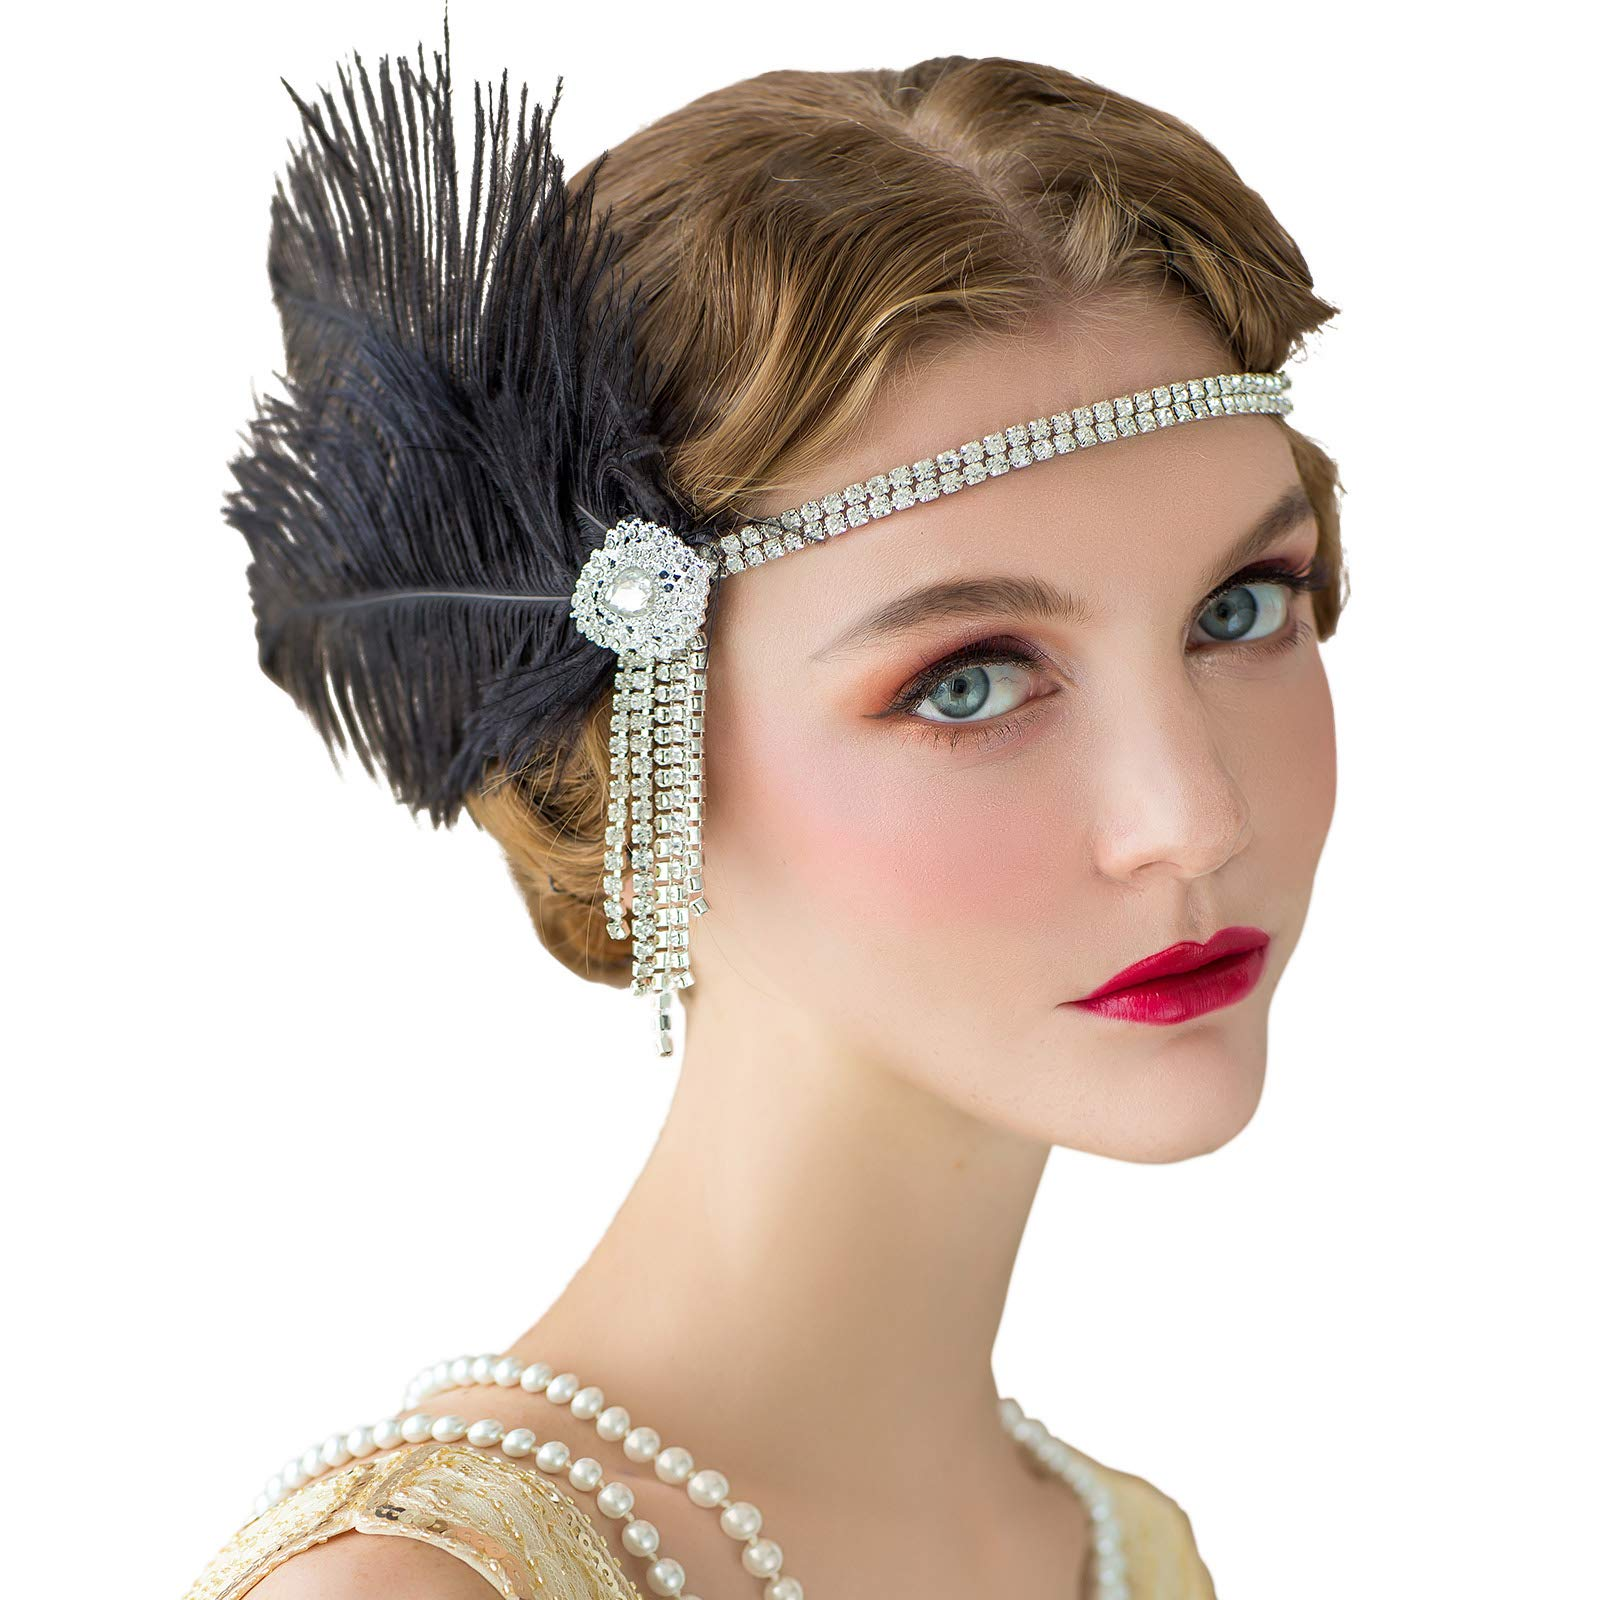 SWEETV Flapper Headbands Womens 1920s Headpiece Great Gatsby Inspired Feather Headband Cocktail Party Rhinestone Hair Accessories for Women, Black by SWEETV